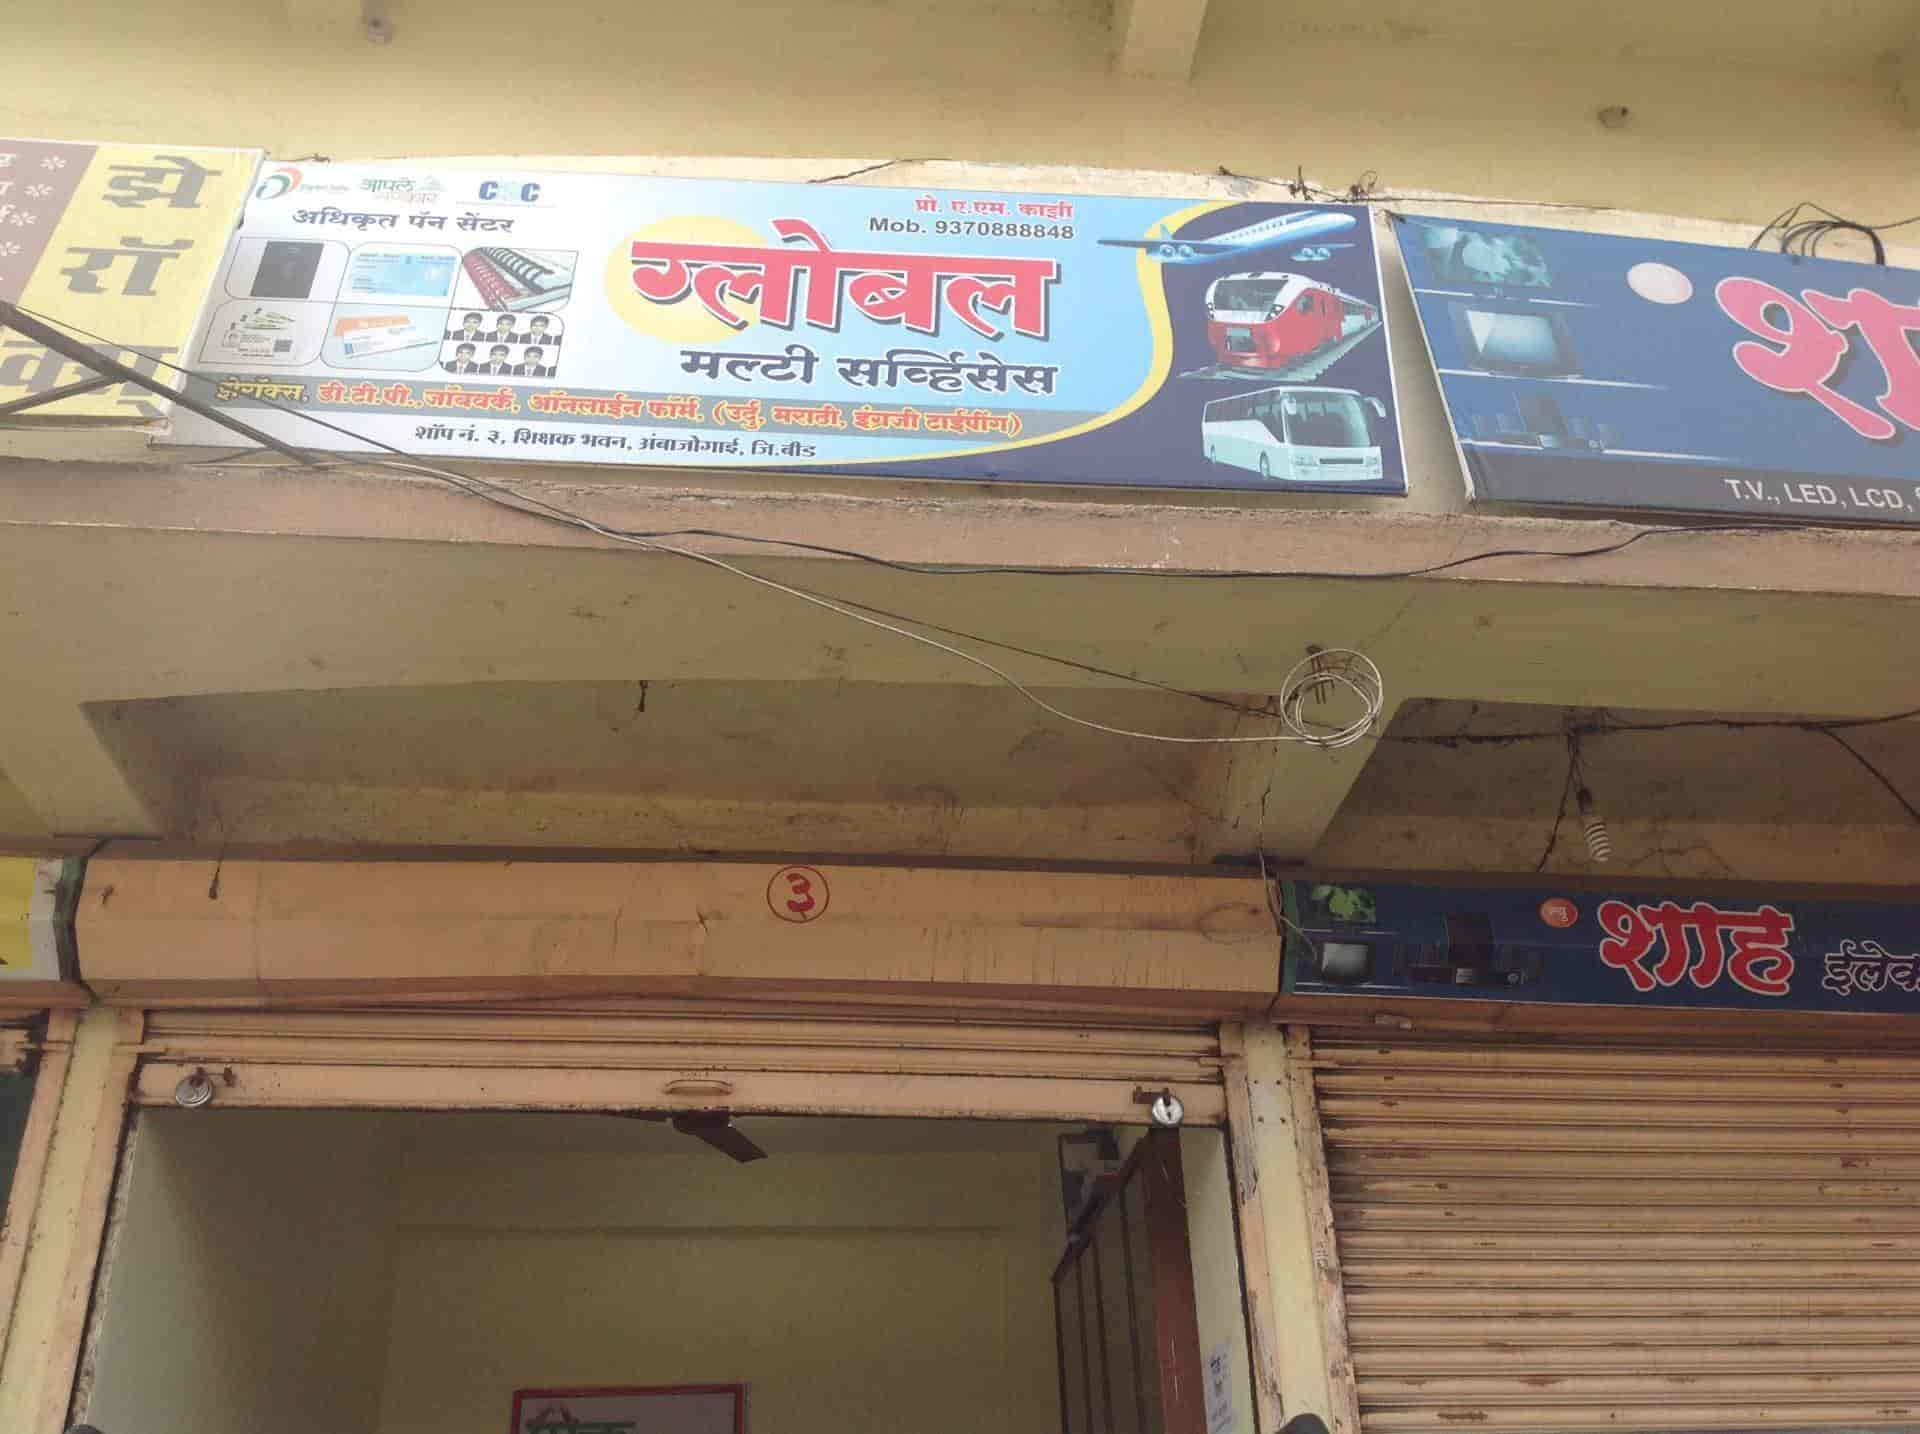 Global Multiservices Photos, Ambajogai, Beed Pictures